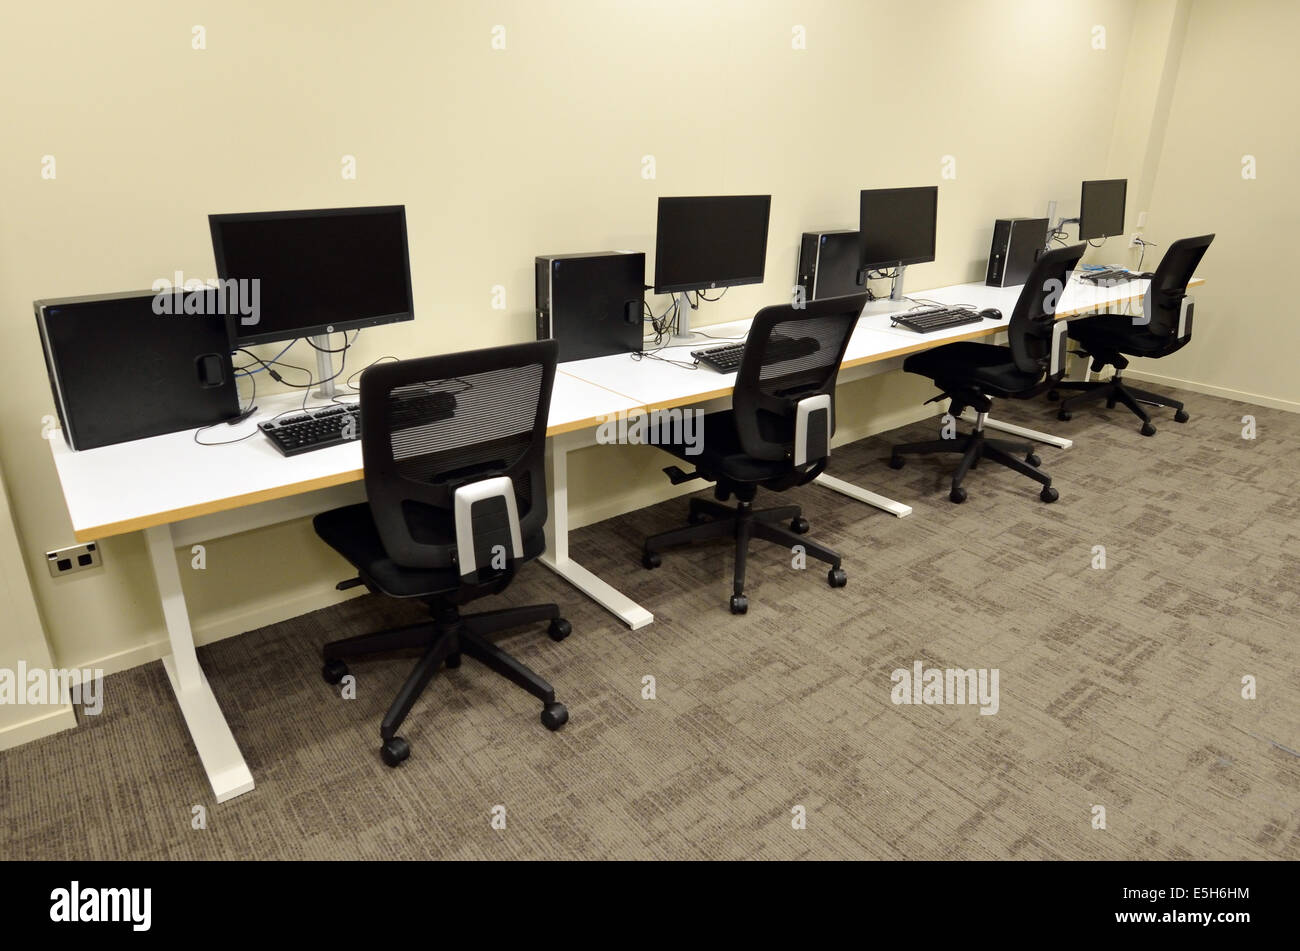 Computer Lab Room With Empty Workstation Office Desk And Chairs Stock Photo Alamy